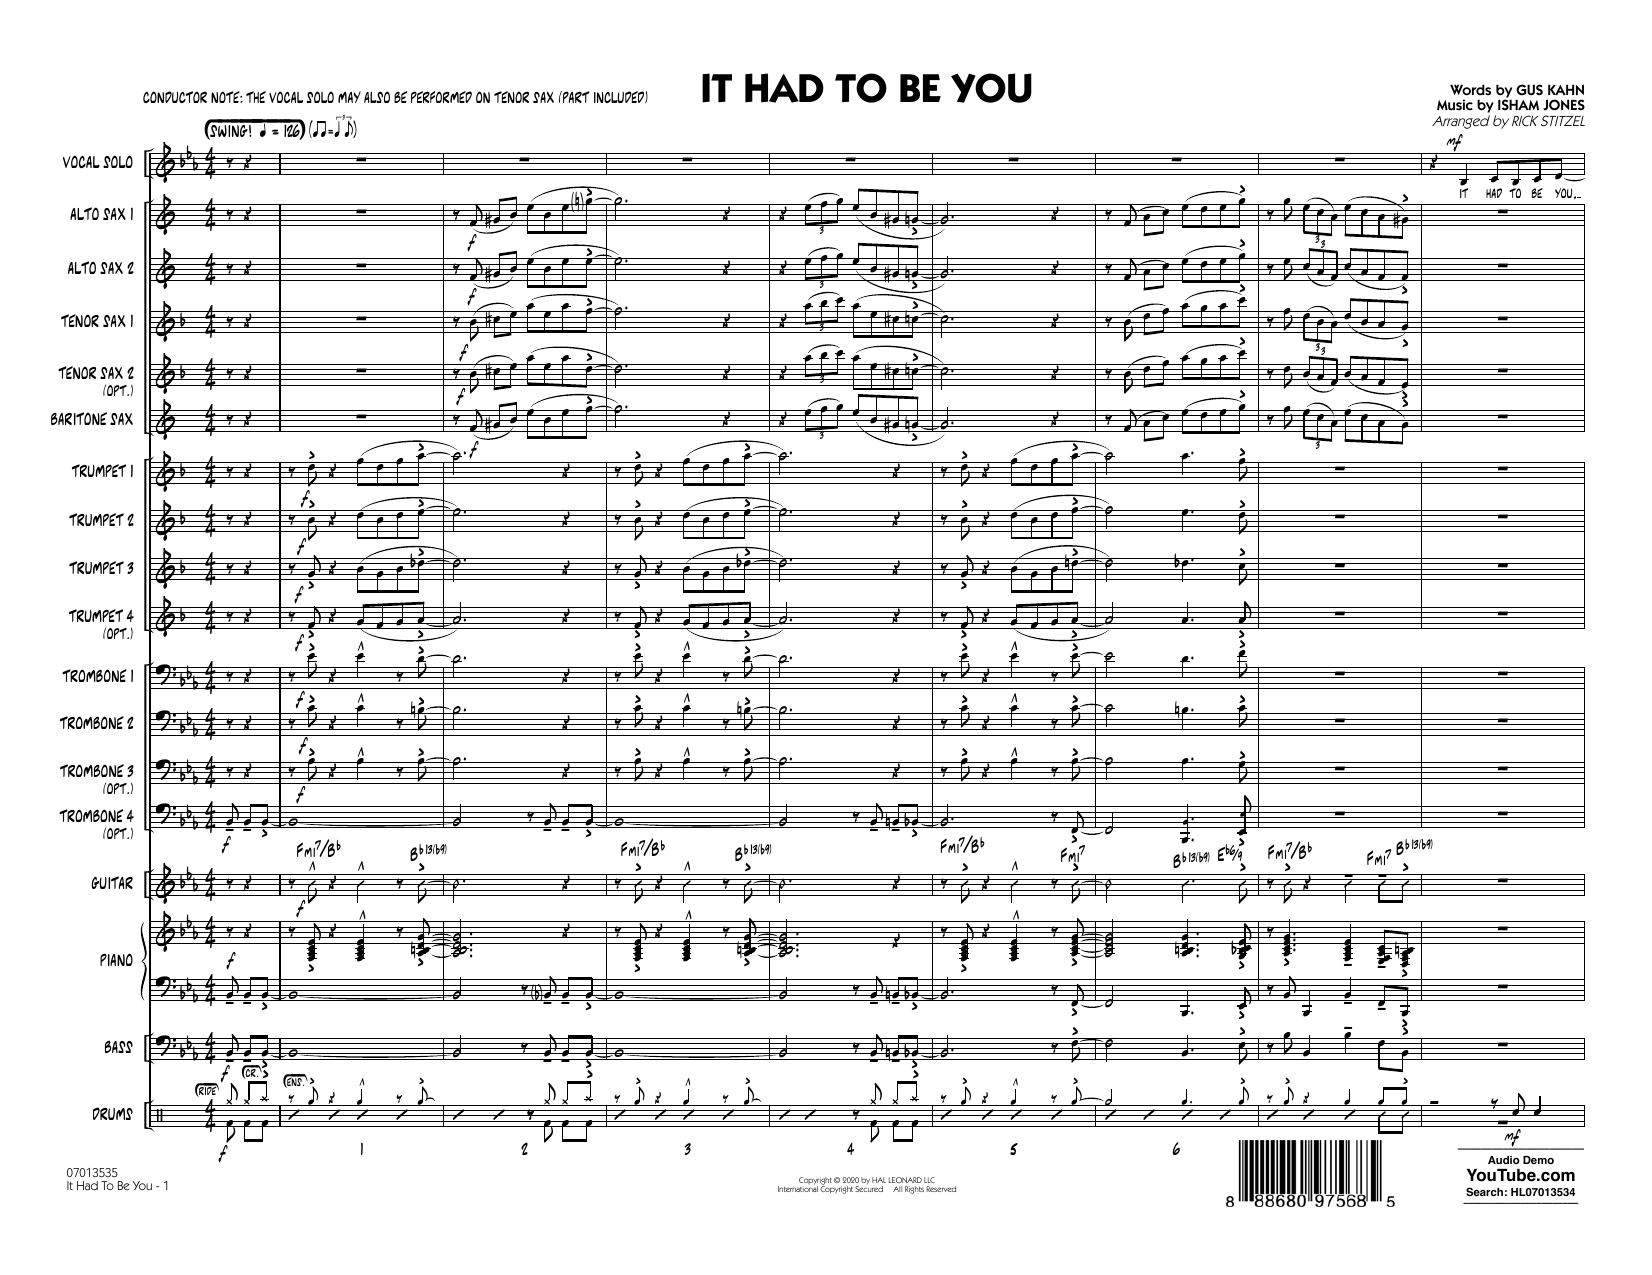 It Had to Be You (arr. Rick Stitzel) - Conductor Score (Full Score) Sheet Music